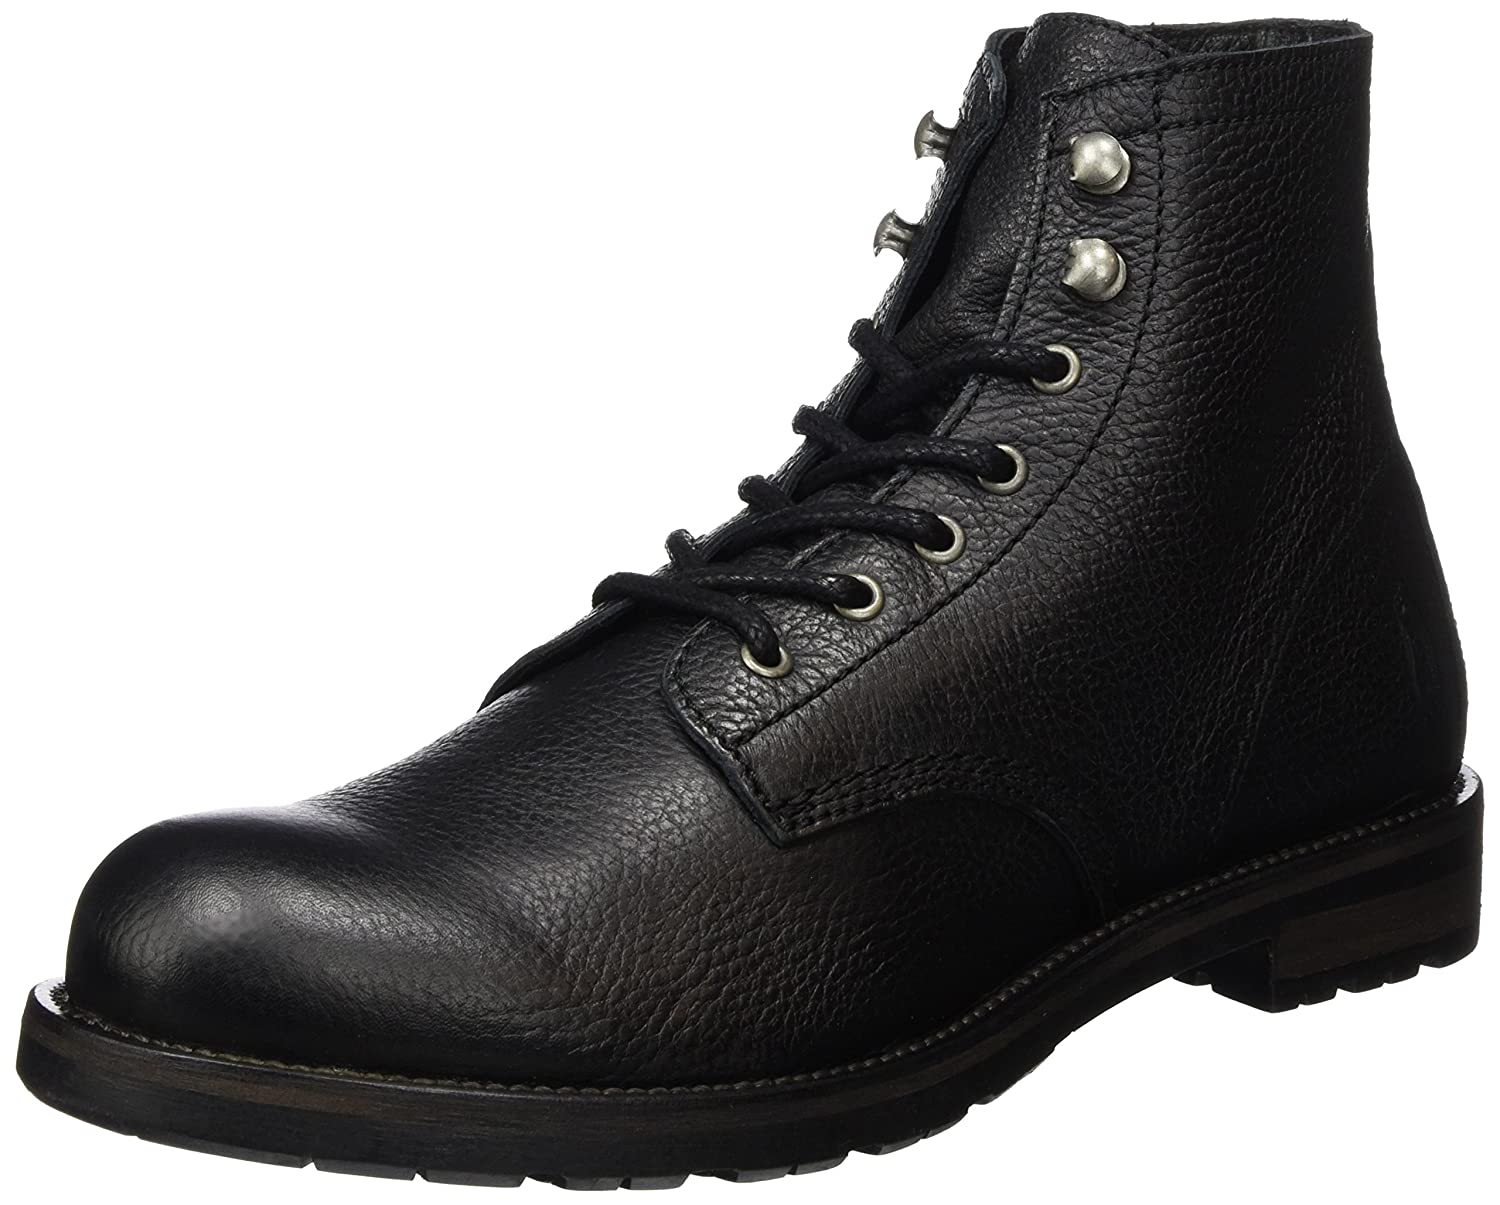 TALLA 44 EU. SHOE THE BEAR Worker, Botines para Hombre